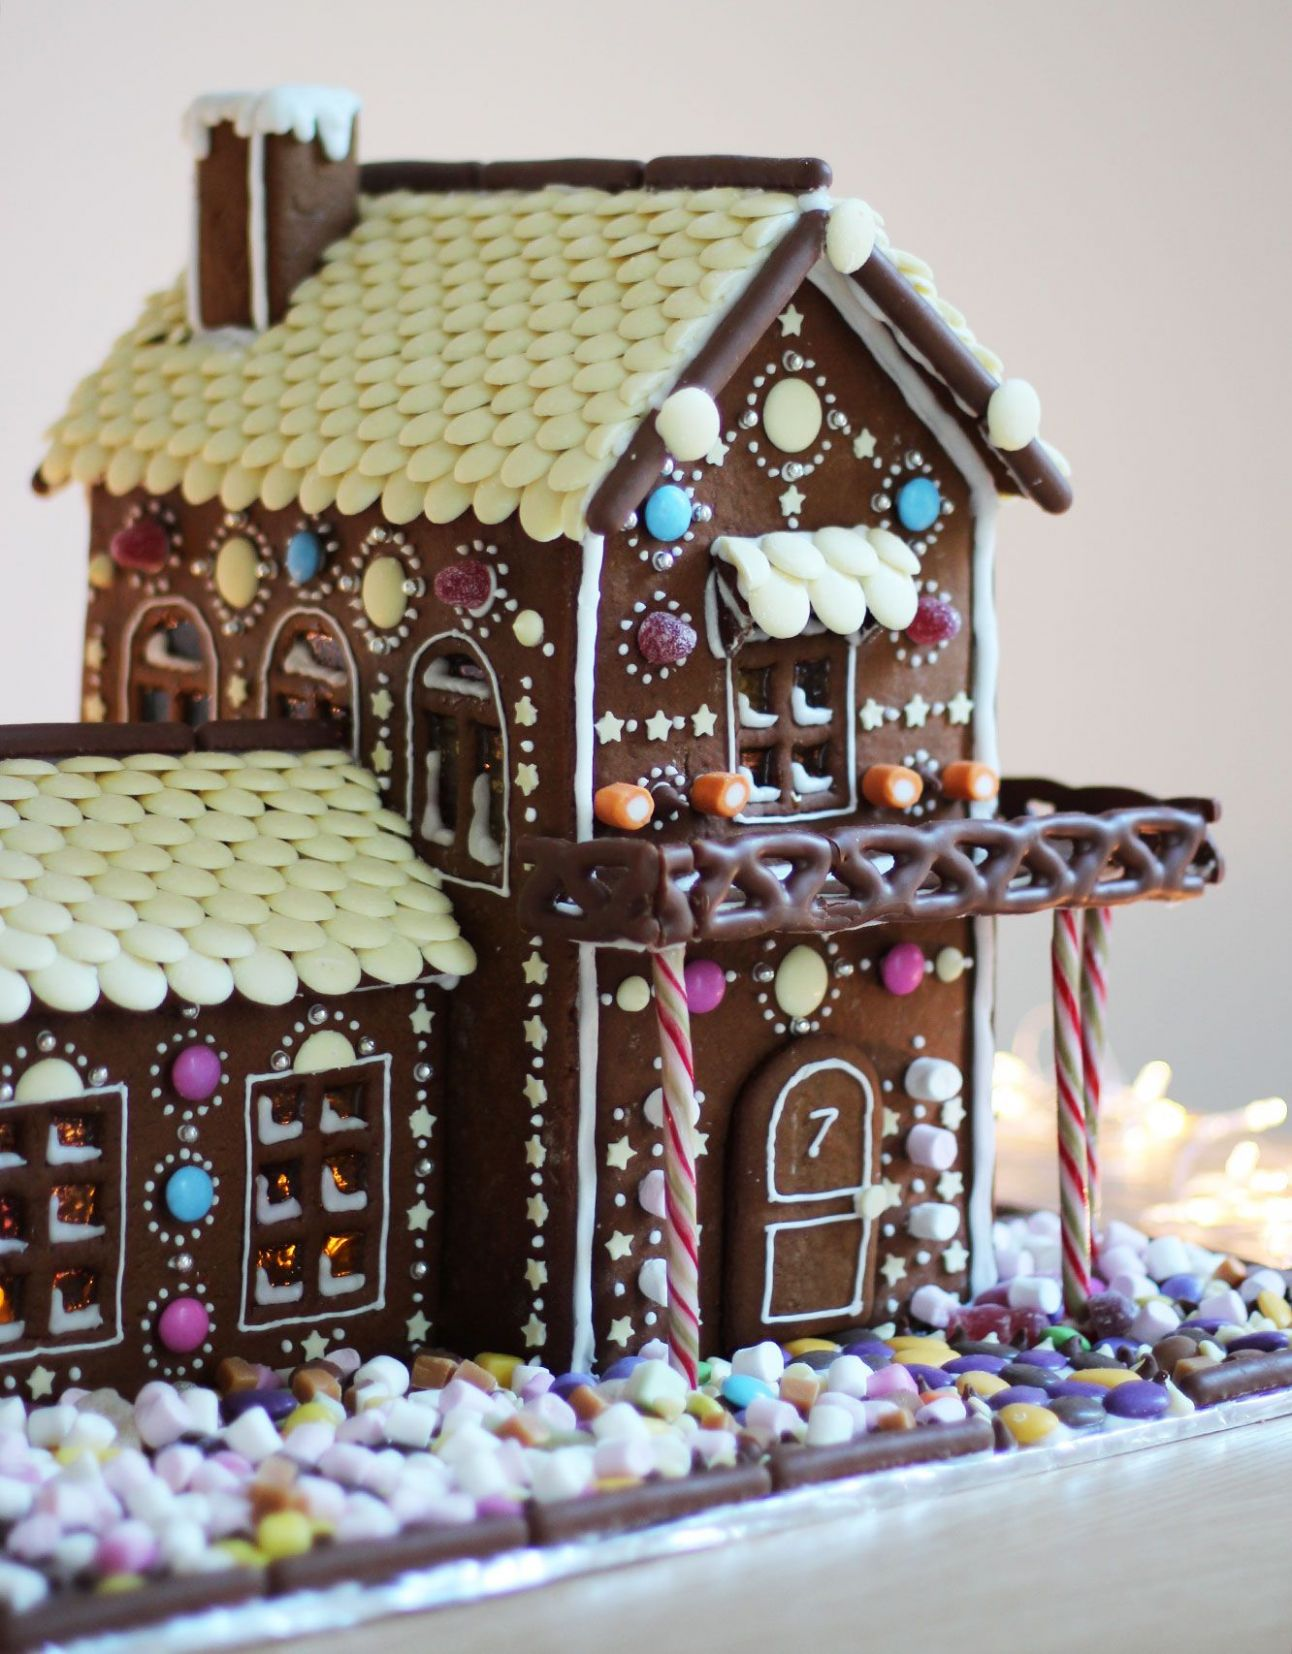 Ginger breading fun 9 | Gingerbread house cookies, Gingerbread ...